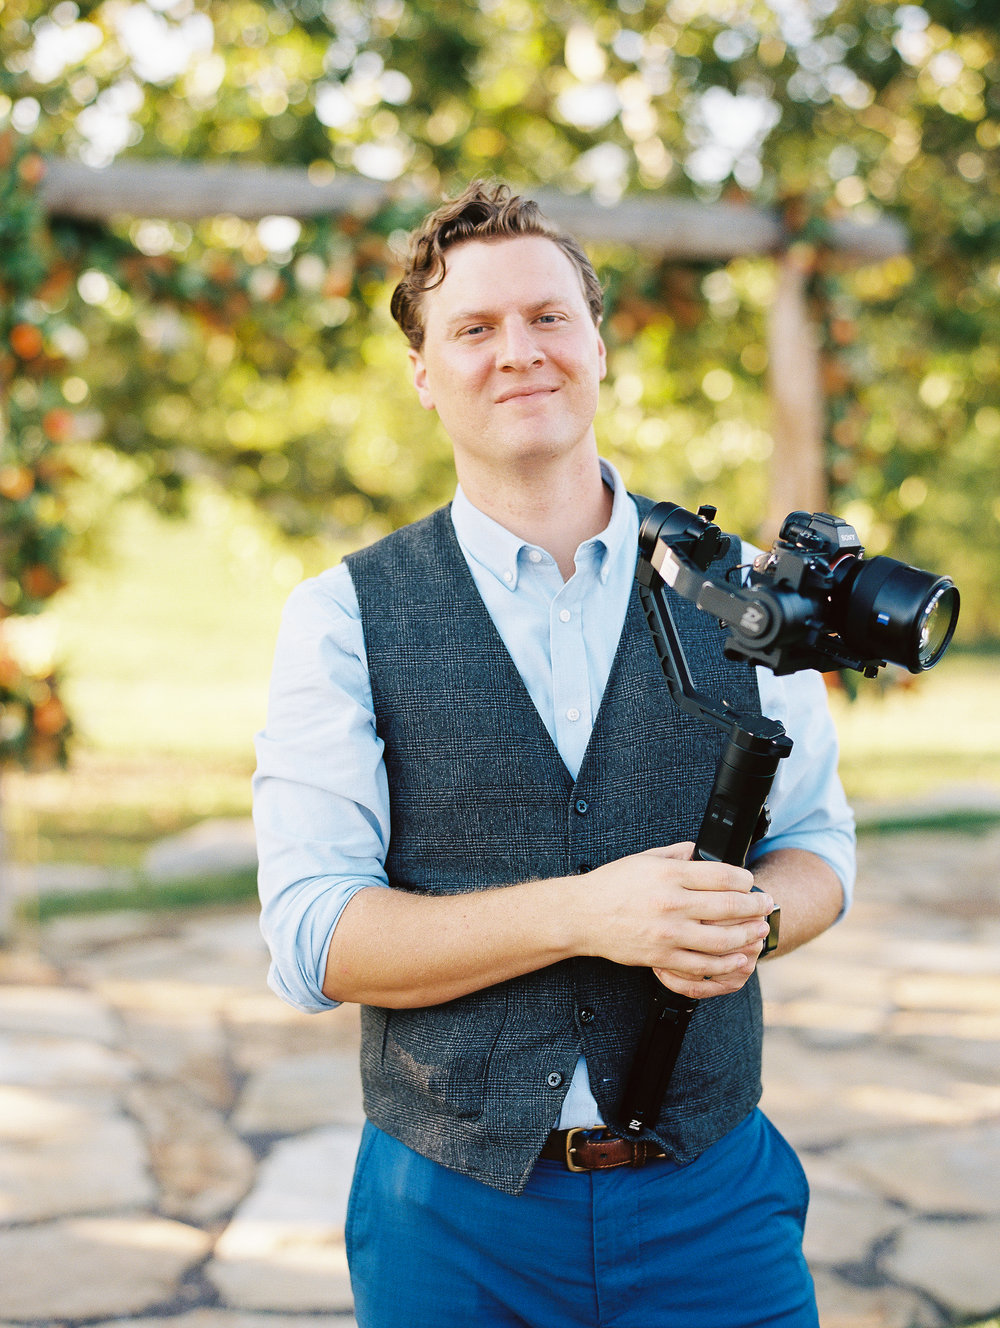 Josh Wilson - Videographer - Josh creates beautiful wedding films for our couples. His background in music, video and story telling has lead him to create beautiful wedding films for each of our couples. Here are his packages:The Essentials $20004.5-5.5 Minute Highlight Video with SoundThe Keepsakes $32005.5-7 Minute Highlight Video with SoundFull Ceremony Coverage VideoThe Heirloom $500015-18 Minute Wedding Film with SoundFull Ceremony Coverage VideoSee below for frequently asked questions and information about wedding films. We offer our couples $600 off any packages when you book us together. We value working together and being a team there to document your day seamlessly.